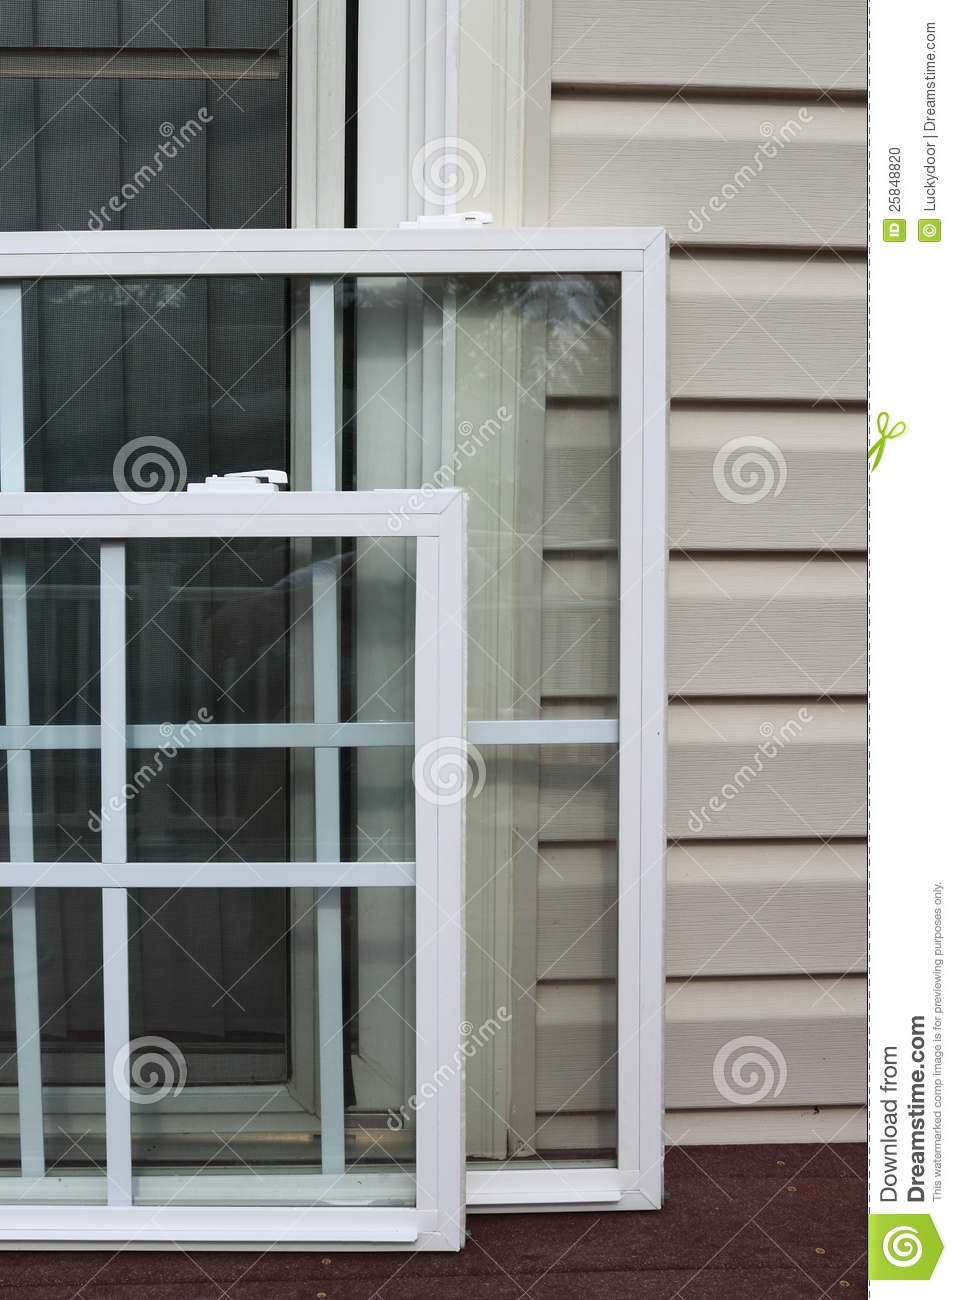 Energy efficient windows stock photo image 25848820 for What makes a window energy efficient